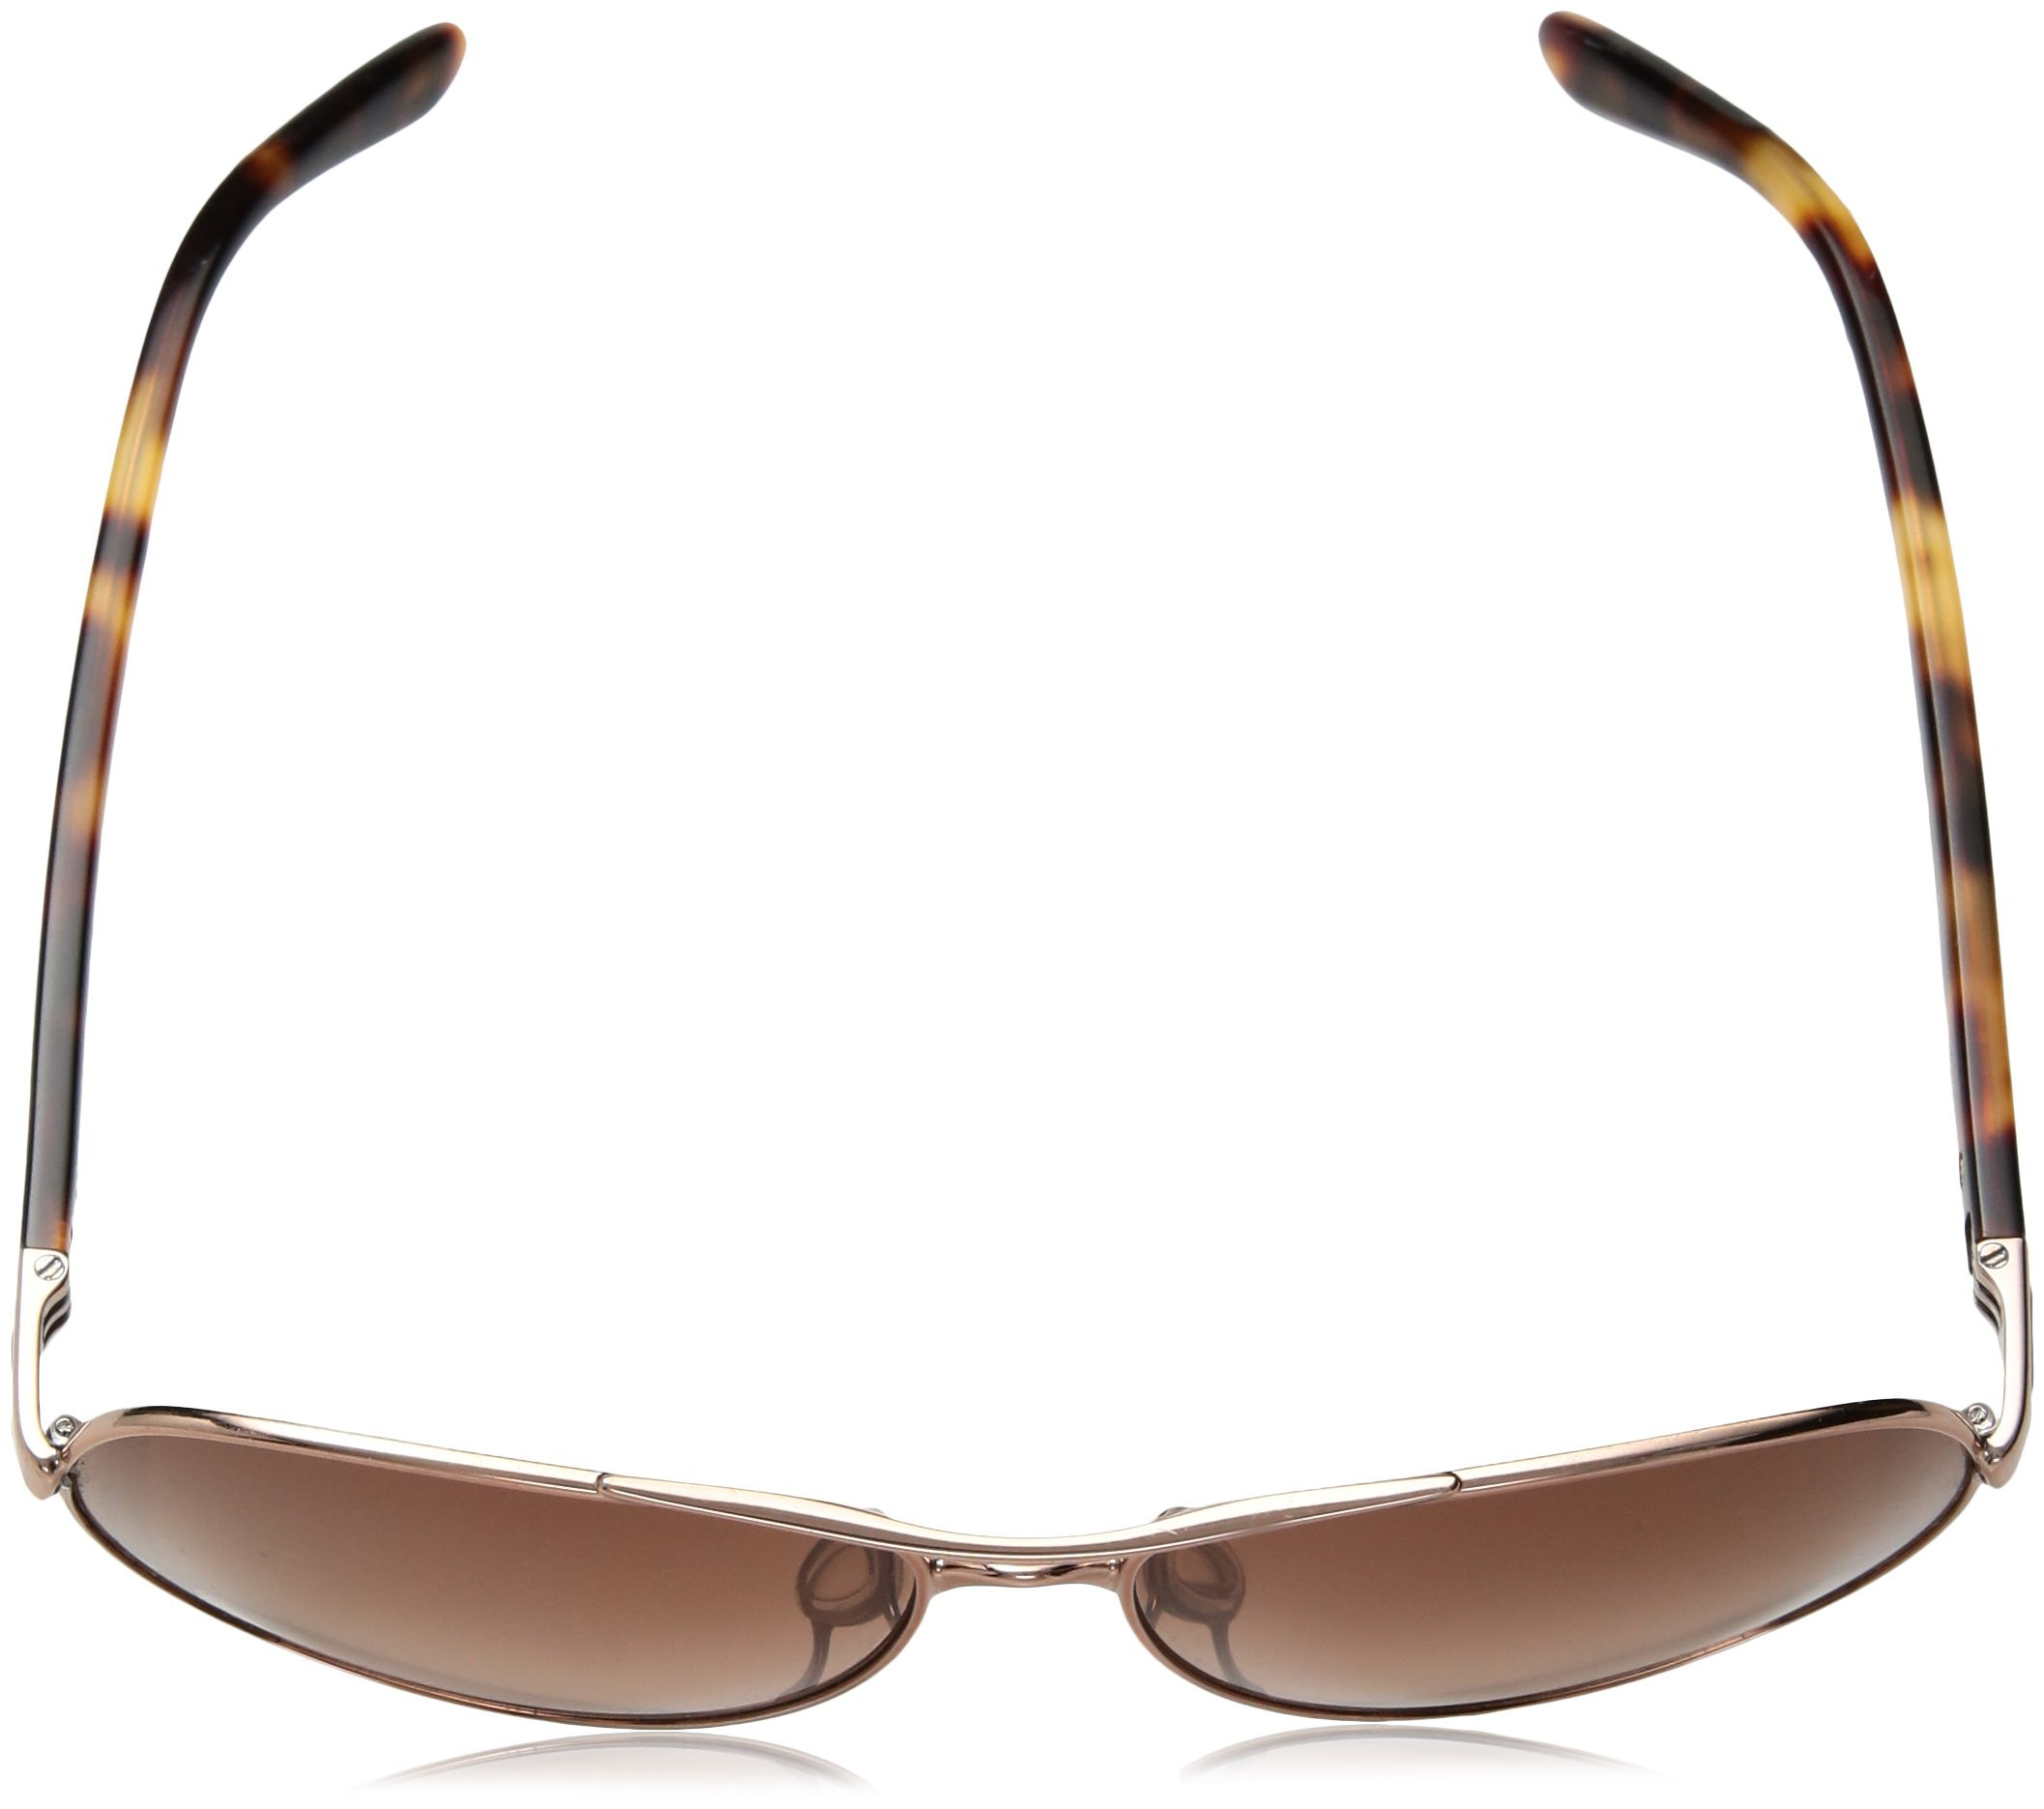 Oakley-Womens-Feedback-Aviator